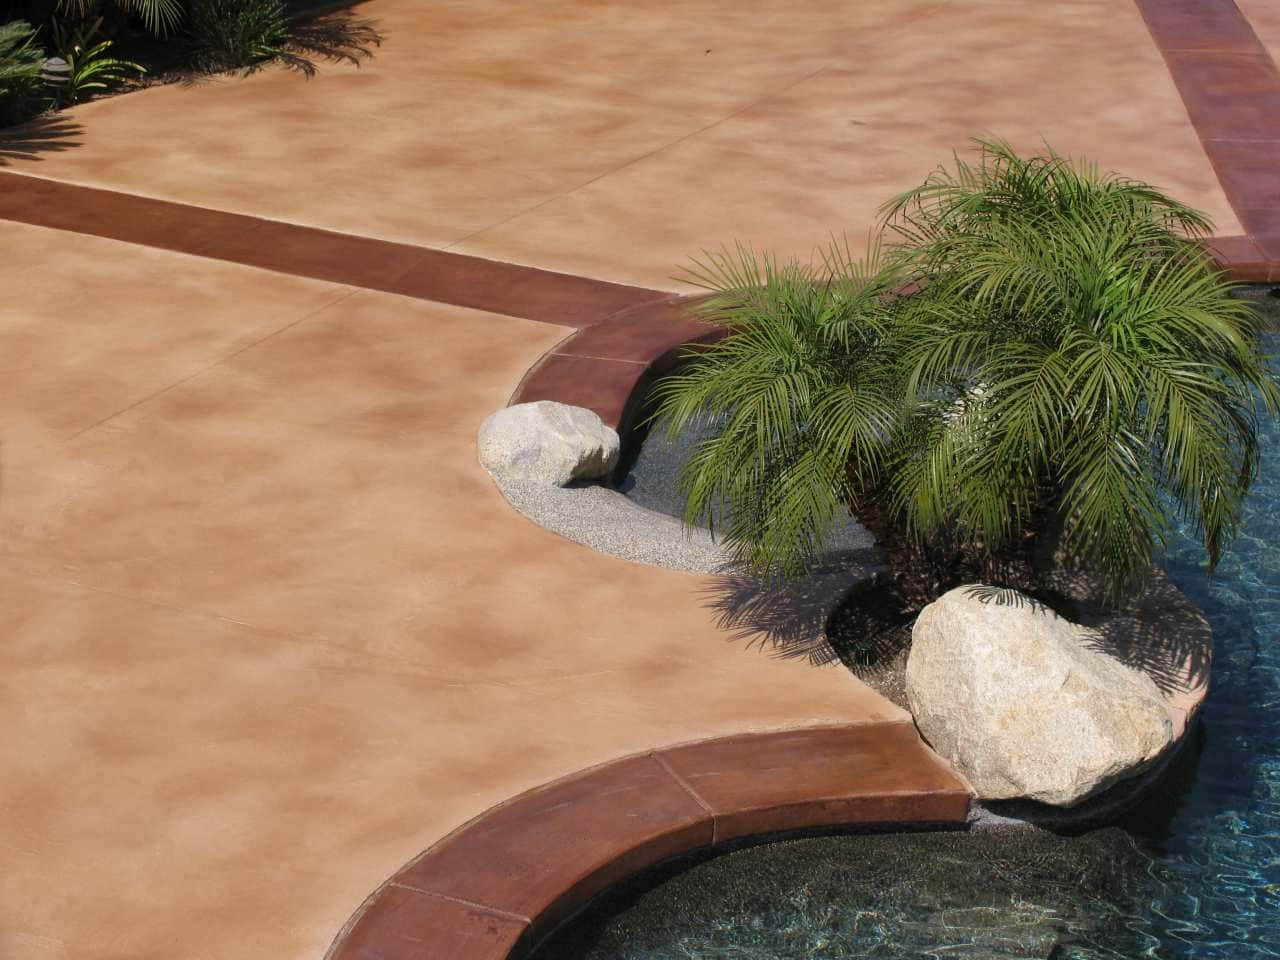 Keeping Pool Decks Safe with a Skid Resistant Waterproof System